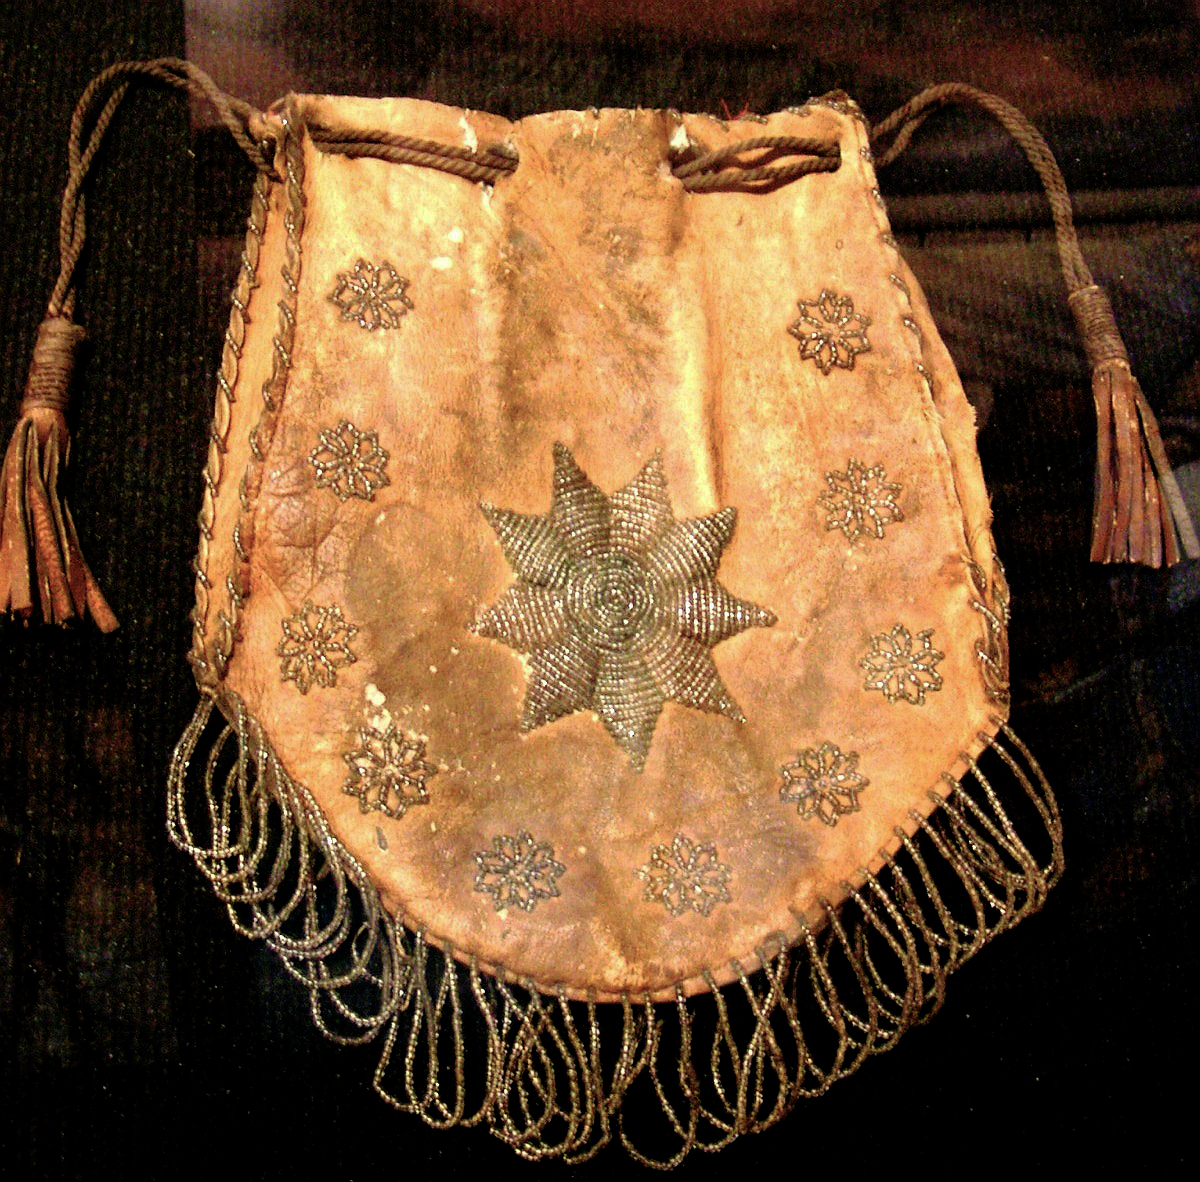 Cherokee purse, pre-1840, made by a student at the Moravian Mission School, James Vann plantation, Georgia. Courtesy of the Georgia Department of Natural Resources, Chief Vann House Historic Site.